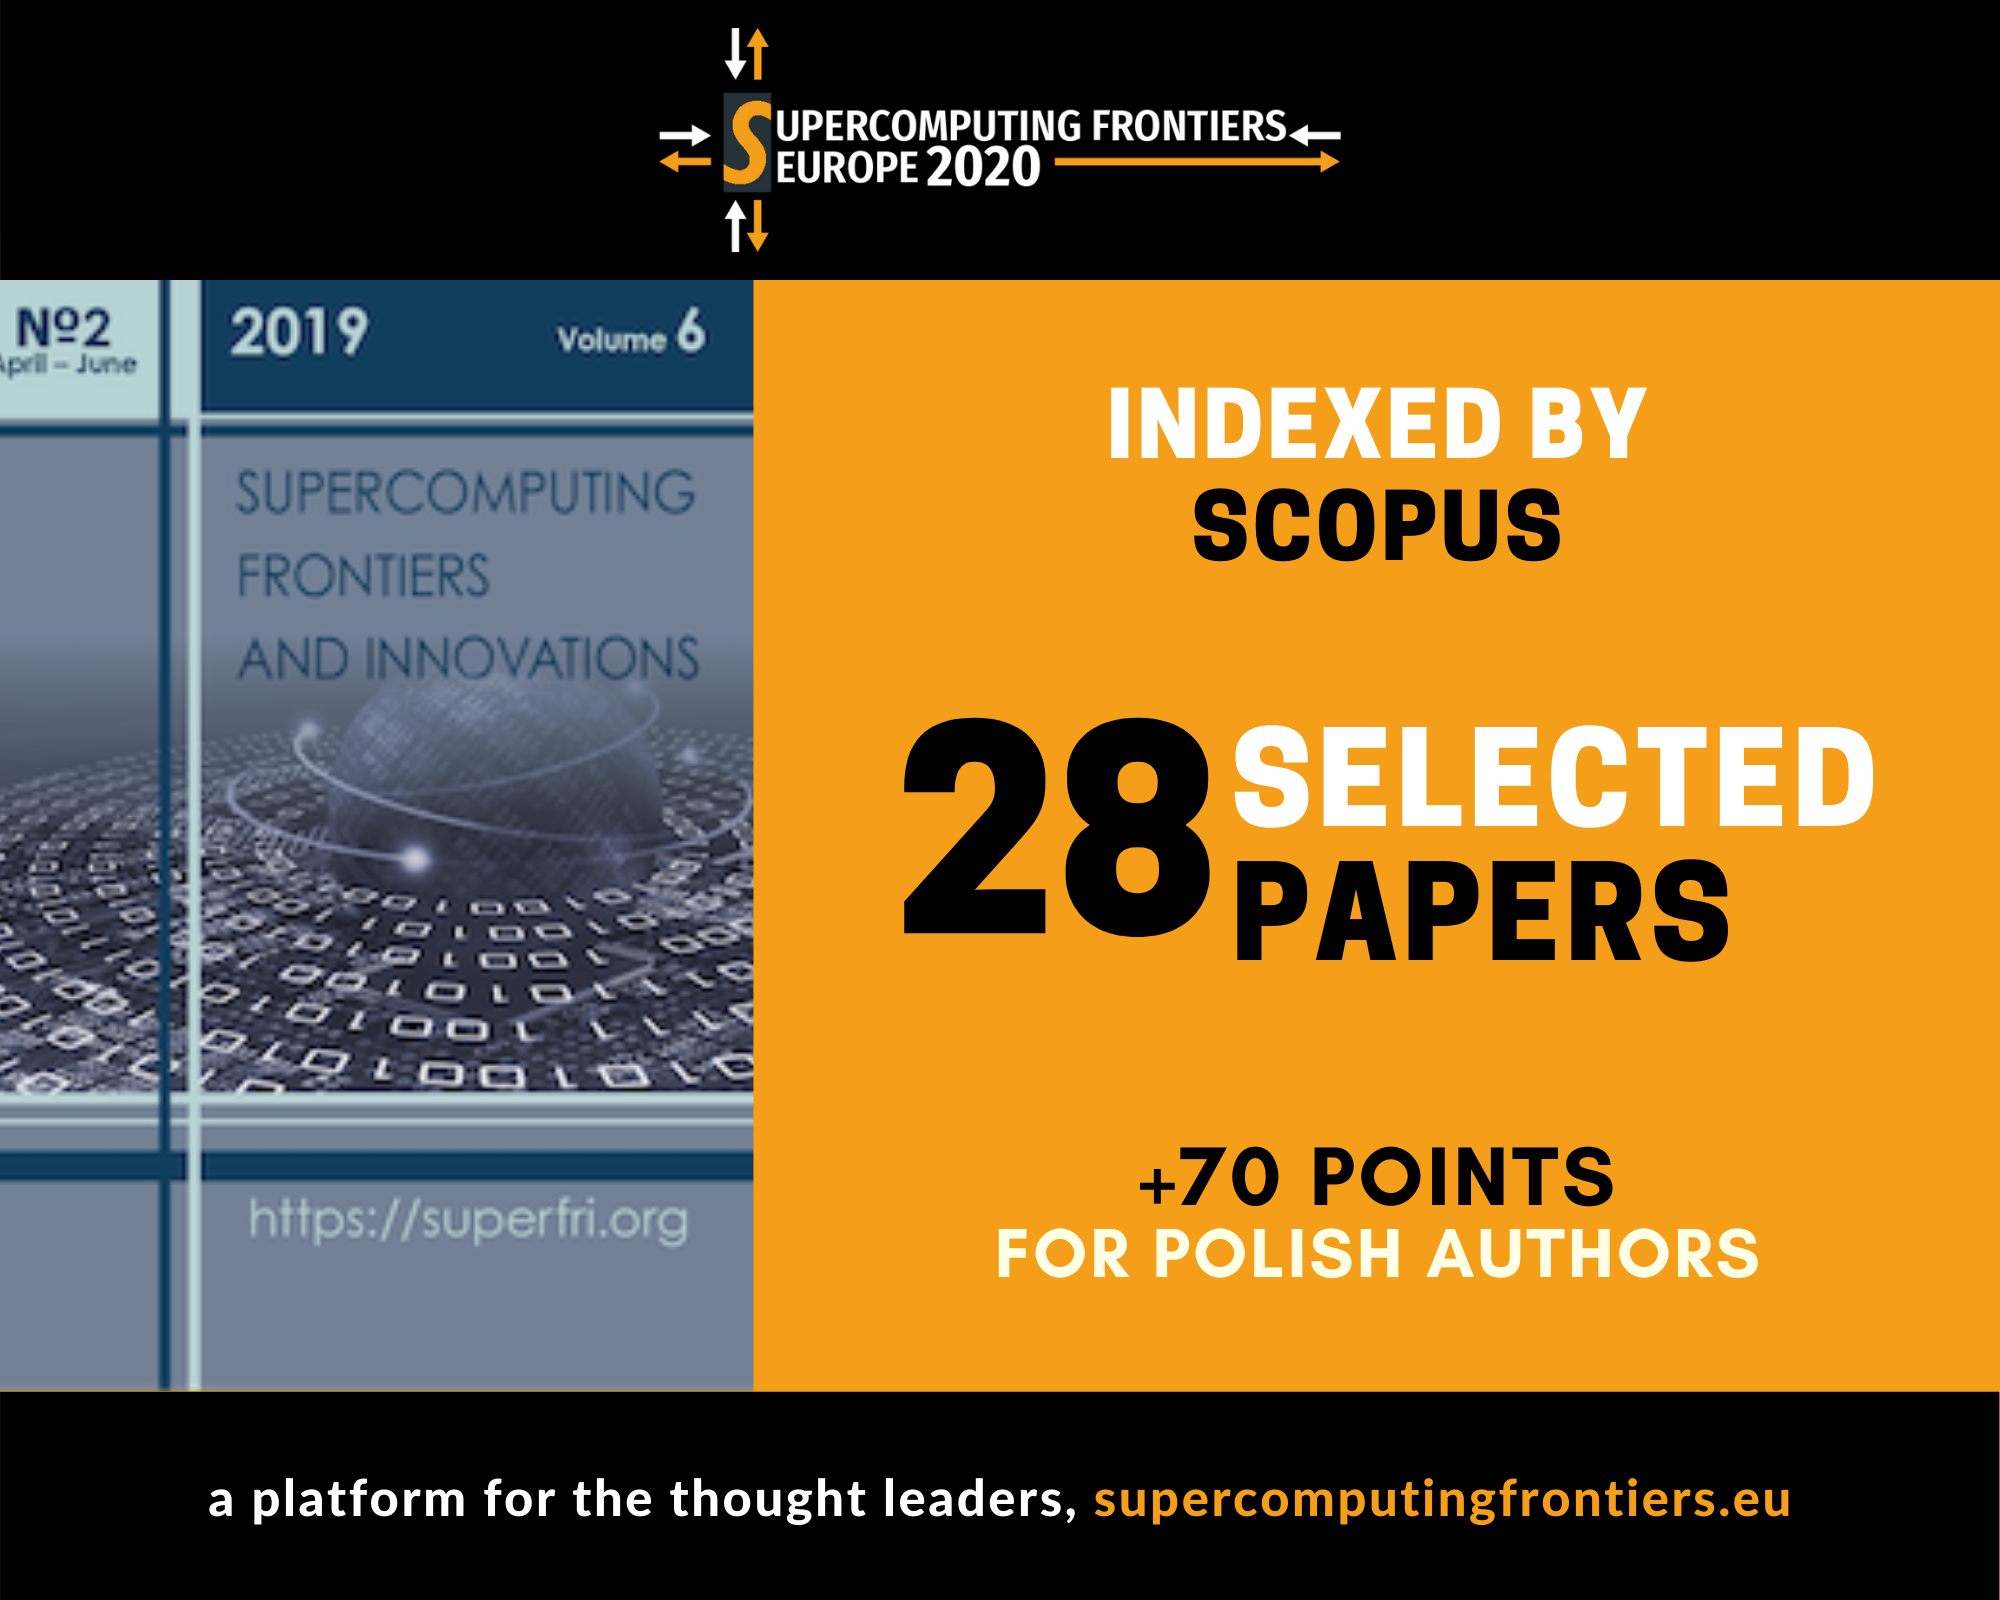 PUBLICATIONS AFTER SCFE20 INDEXED BY SCOPUS